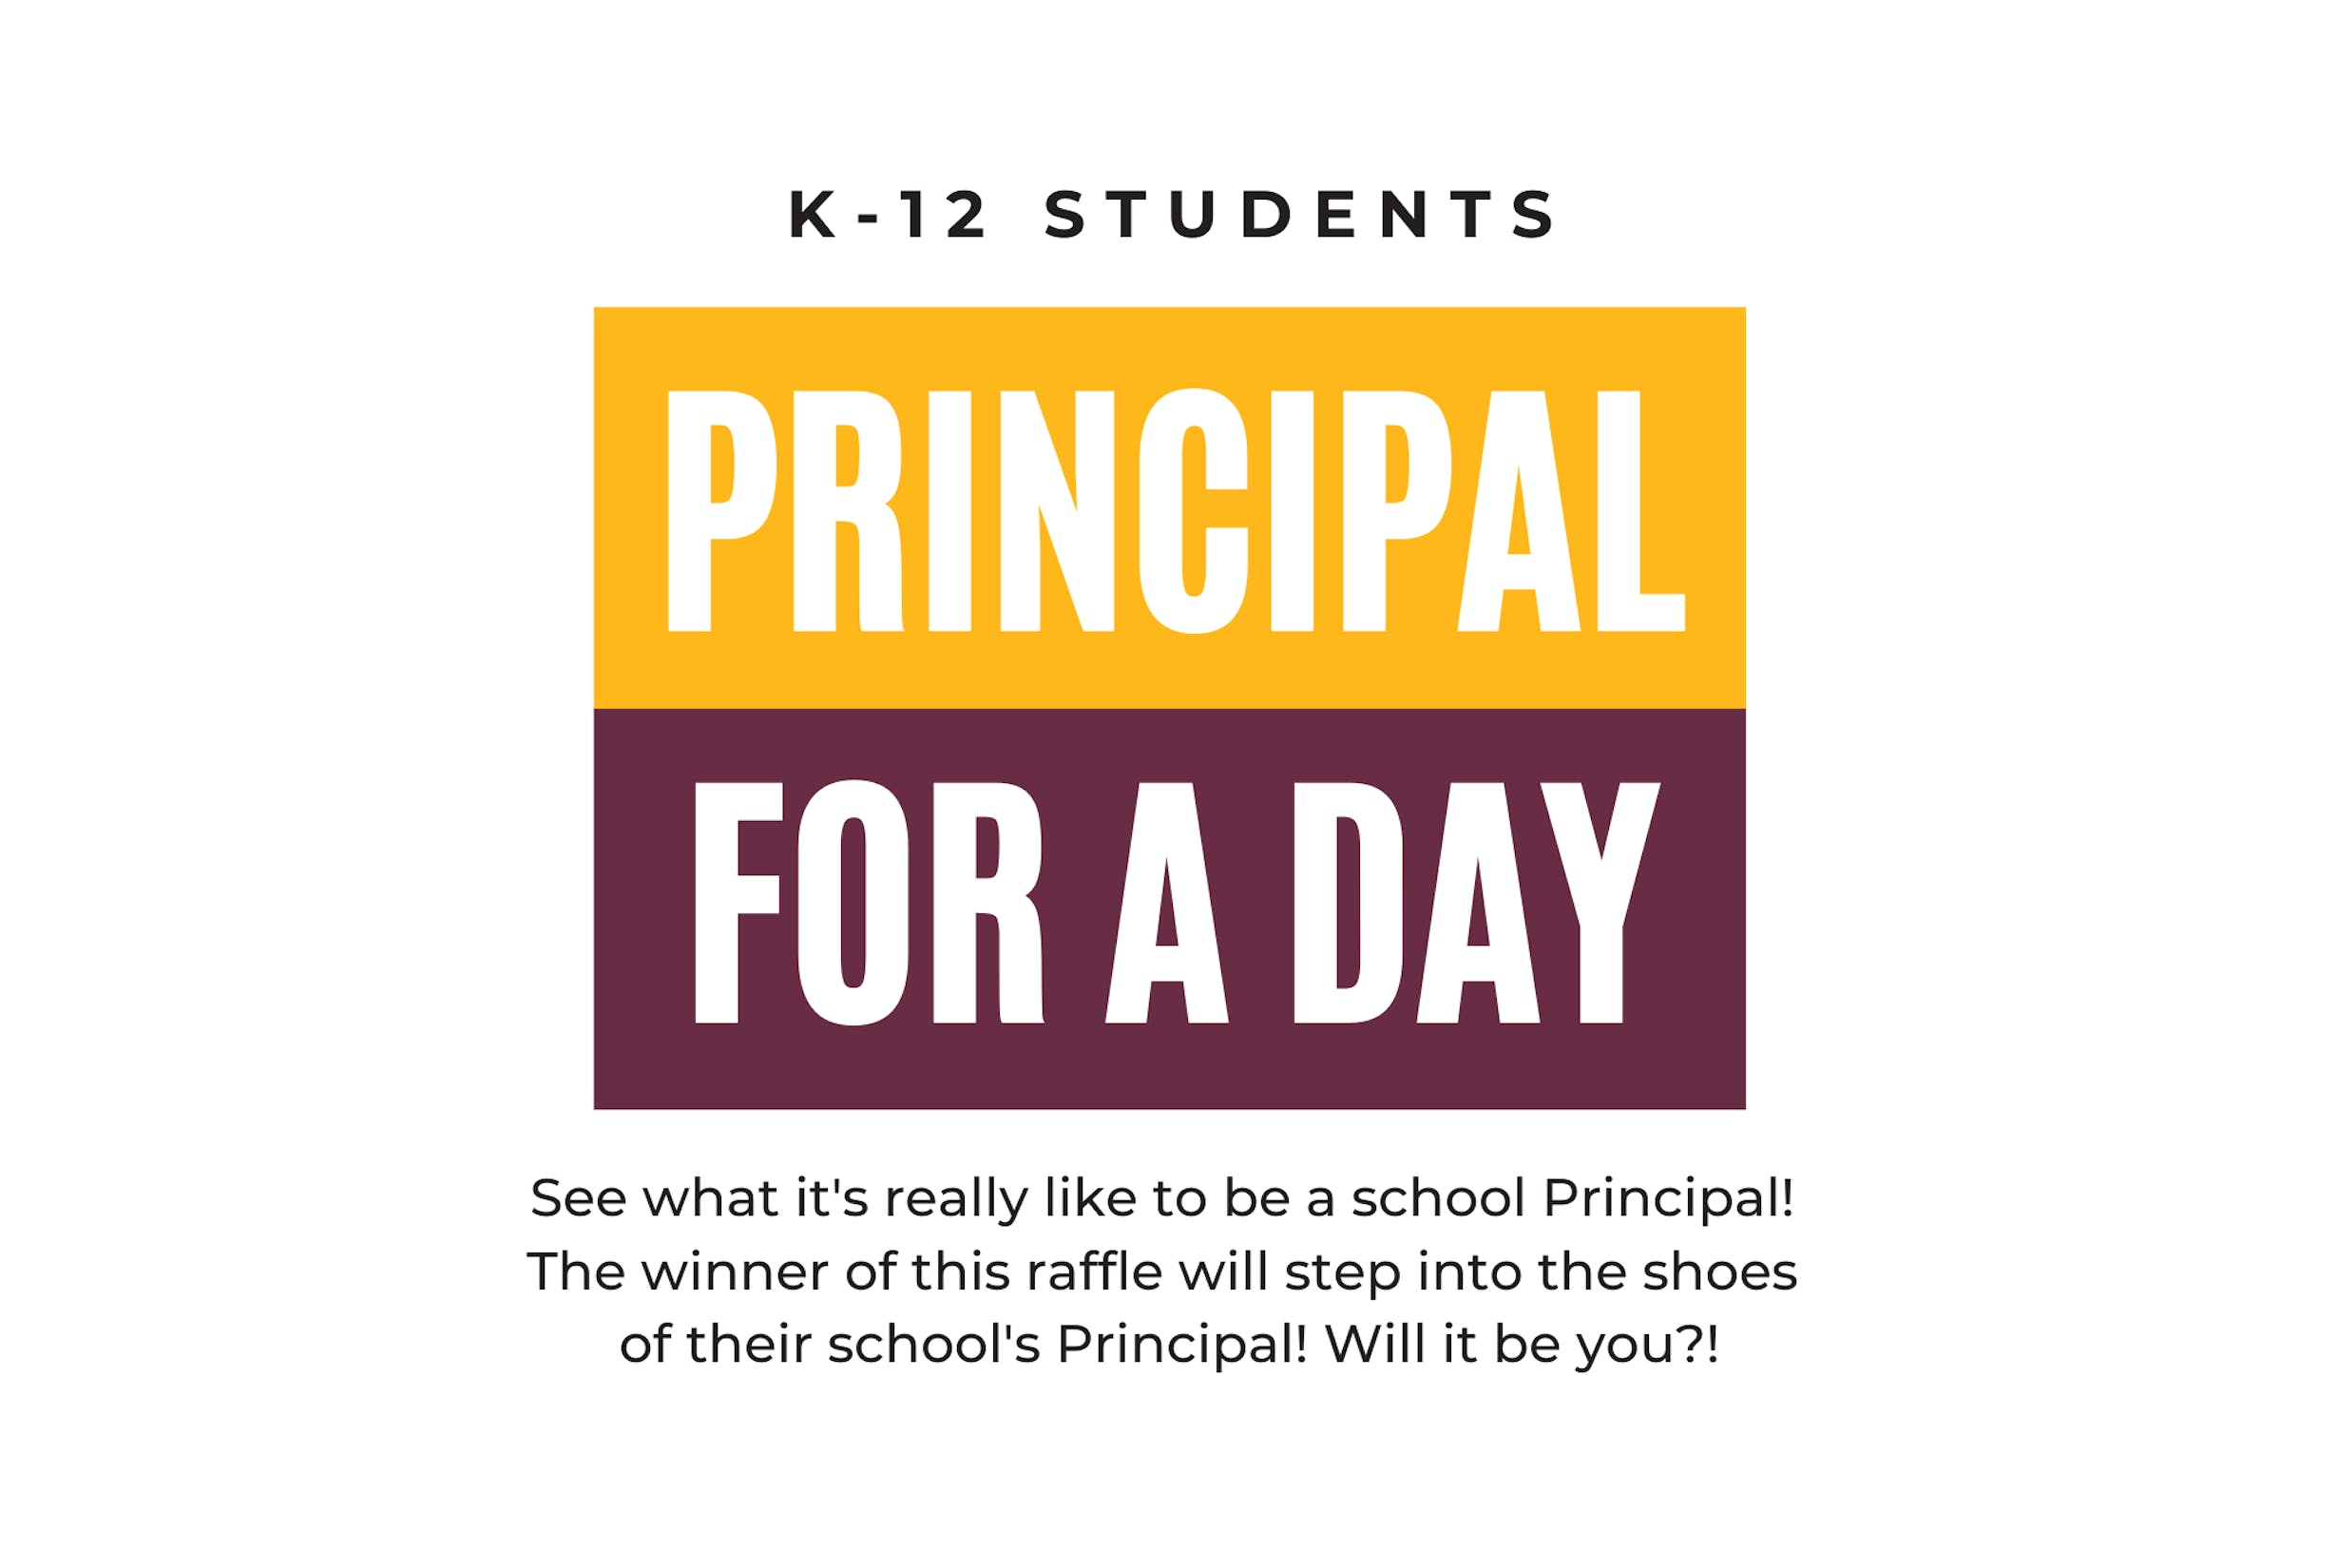 Principal for a Day Prize